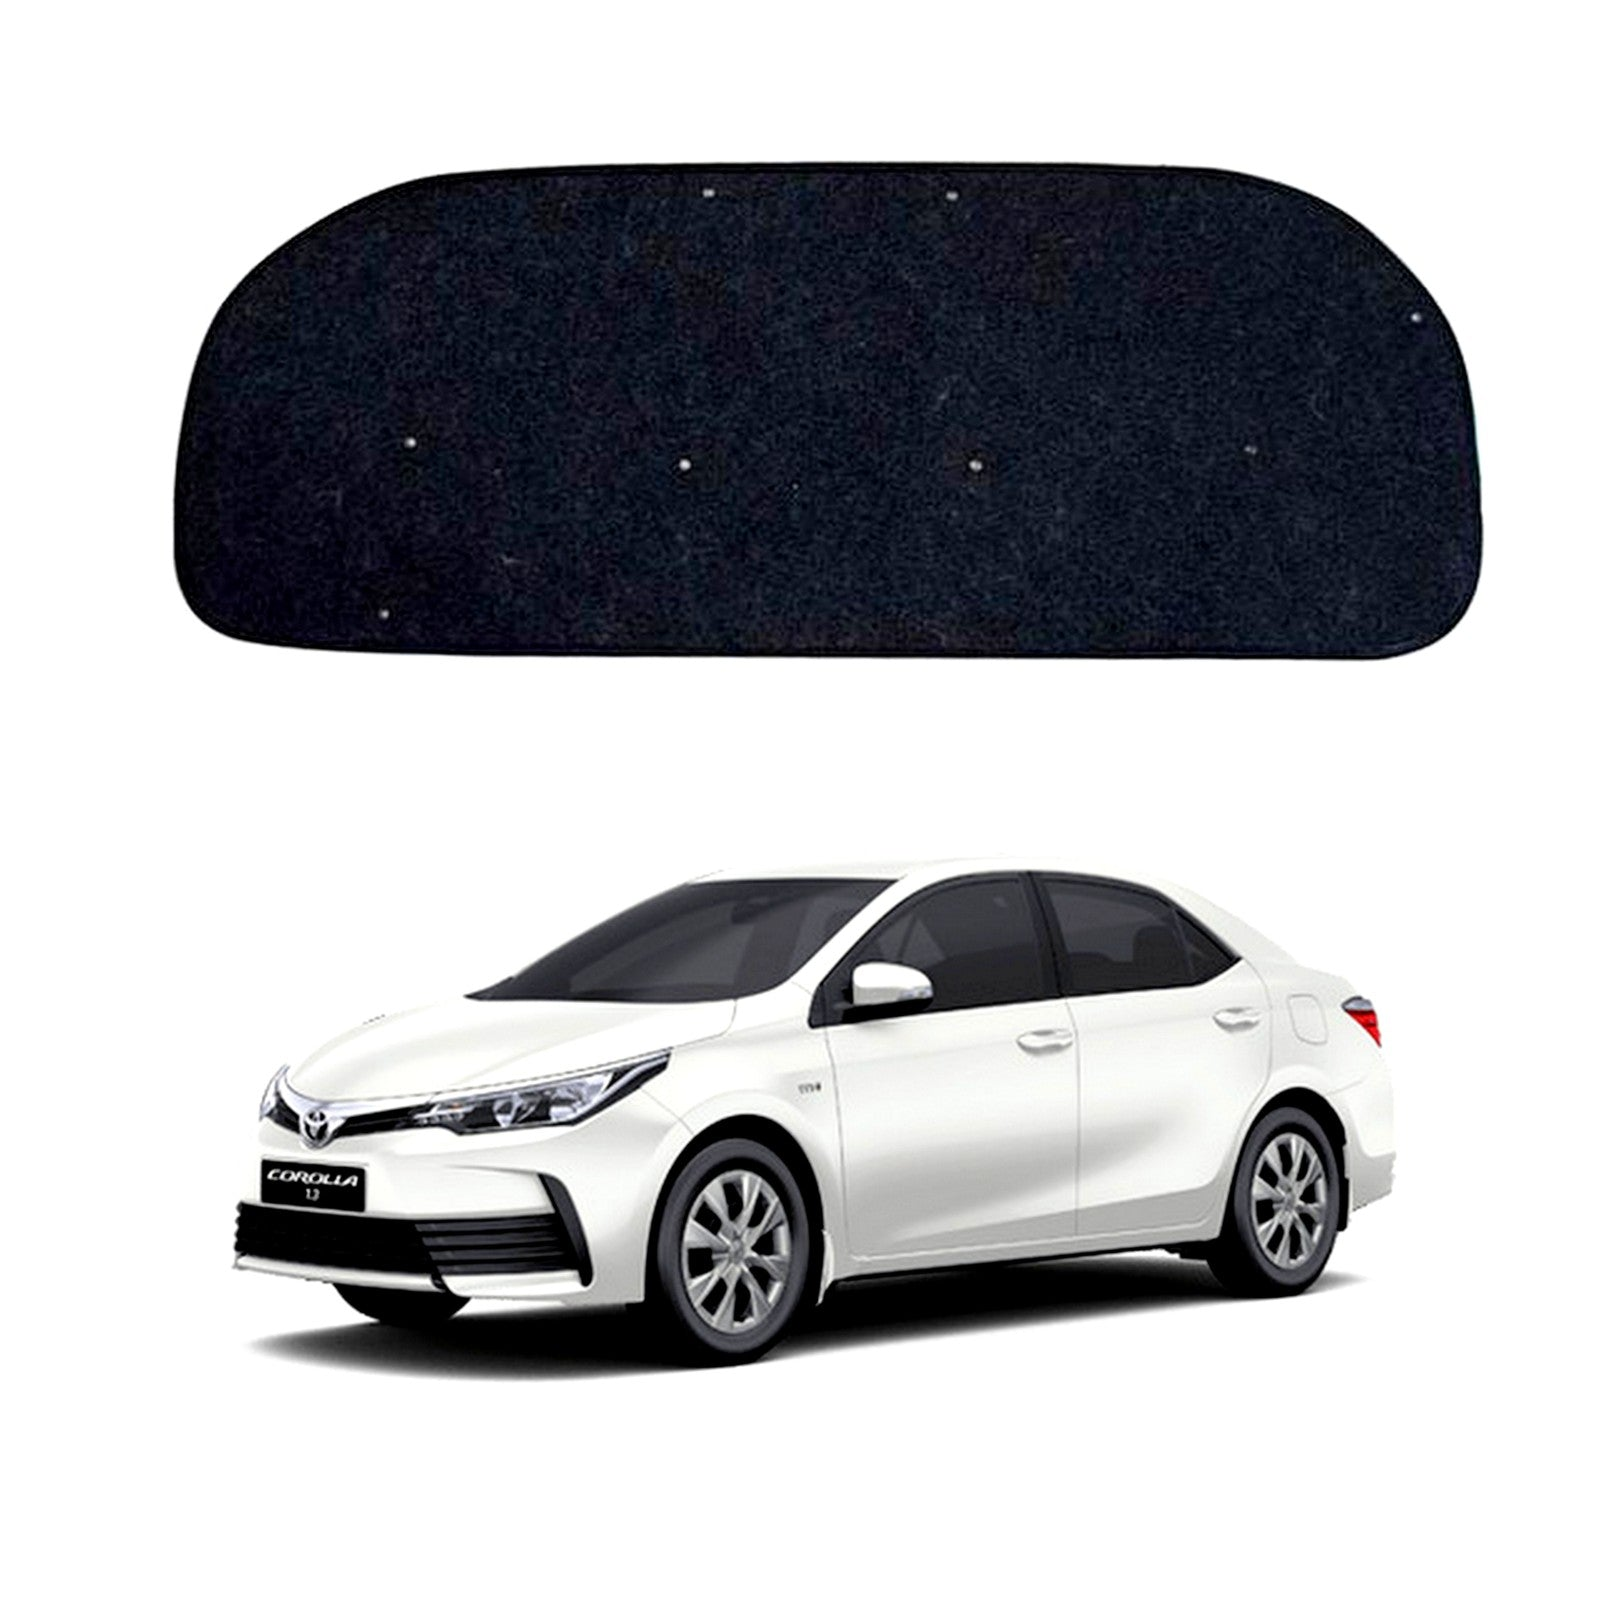 BONNET INSULATION | HOOD INSULATION PAD FOR TOYOTA COROLLA